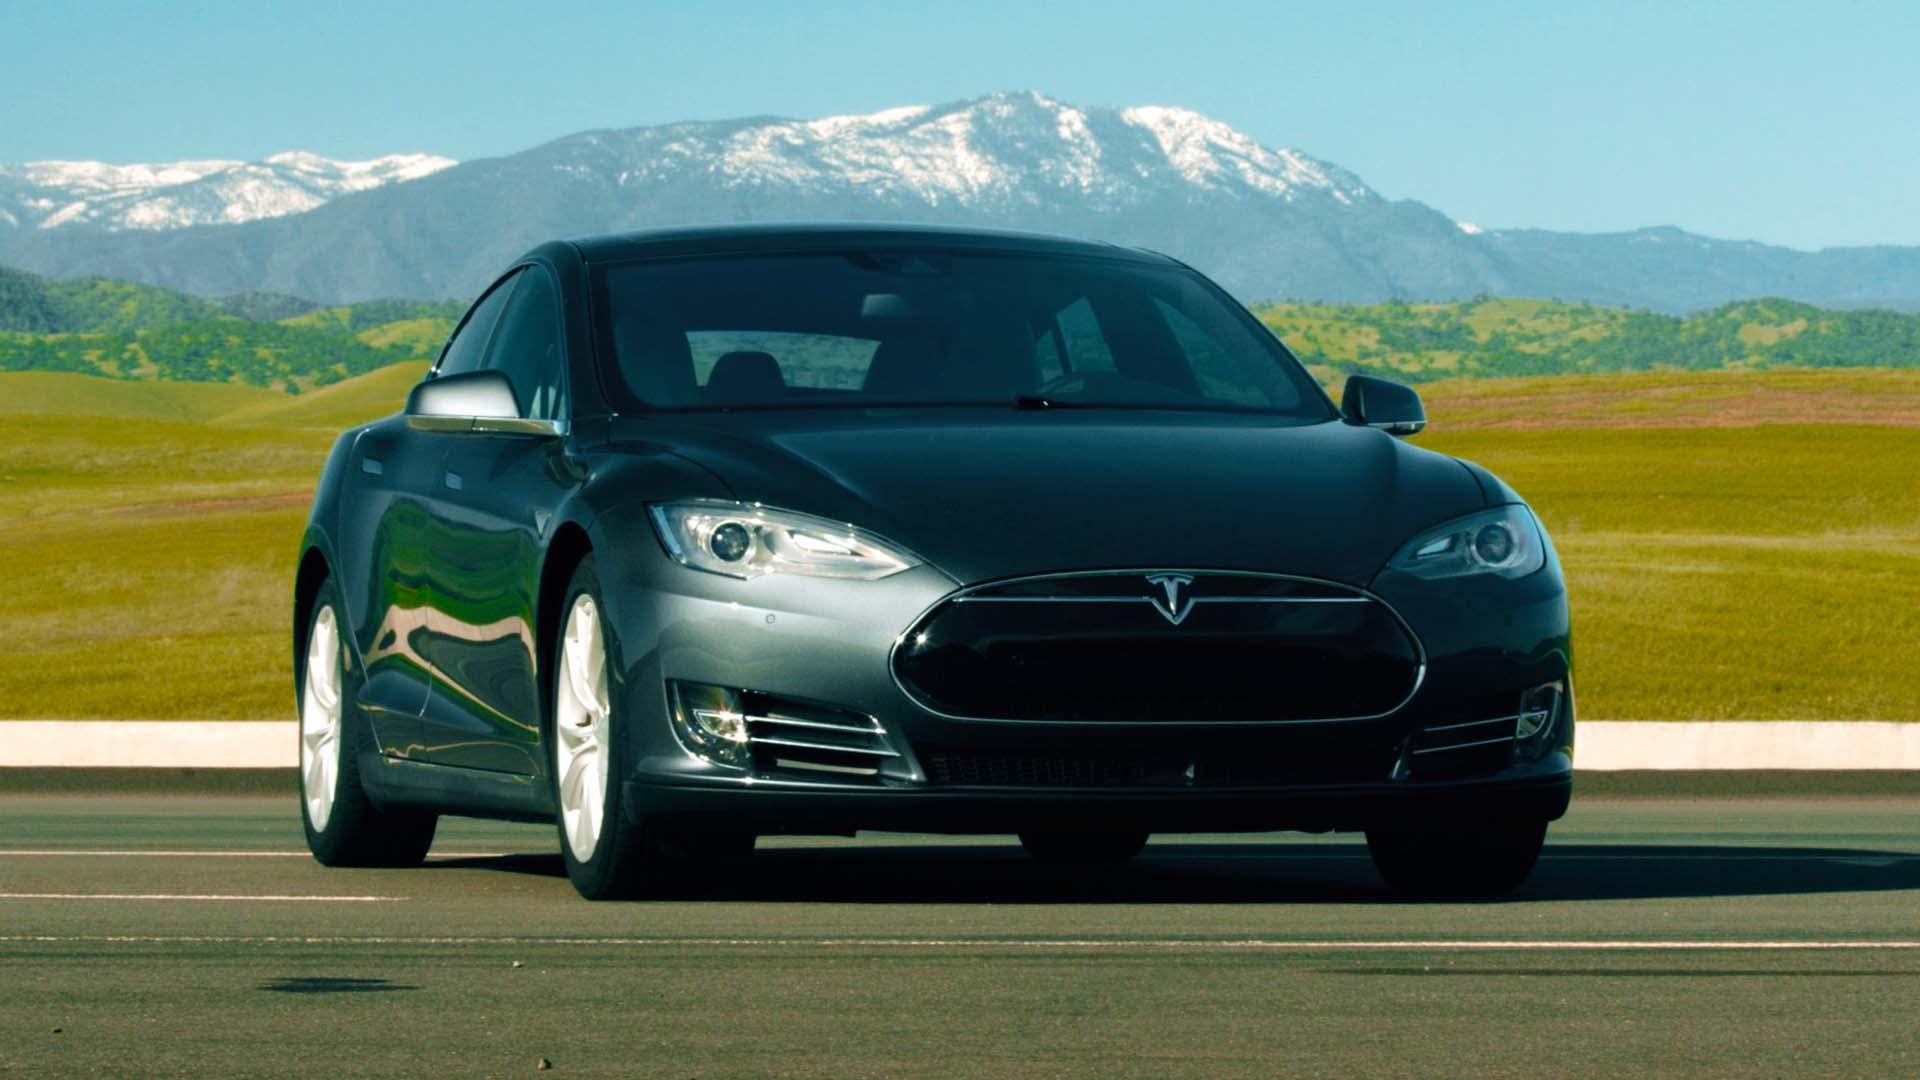 Tesla's Model S 90D is the luxury electric with the longest legs